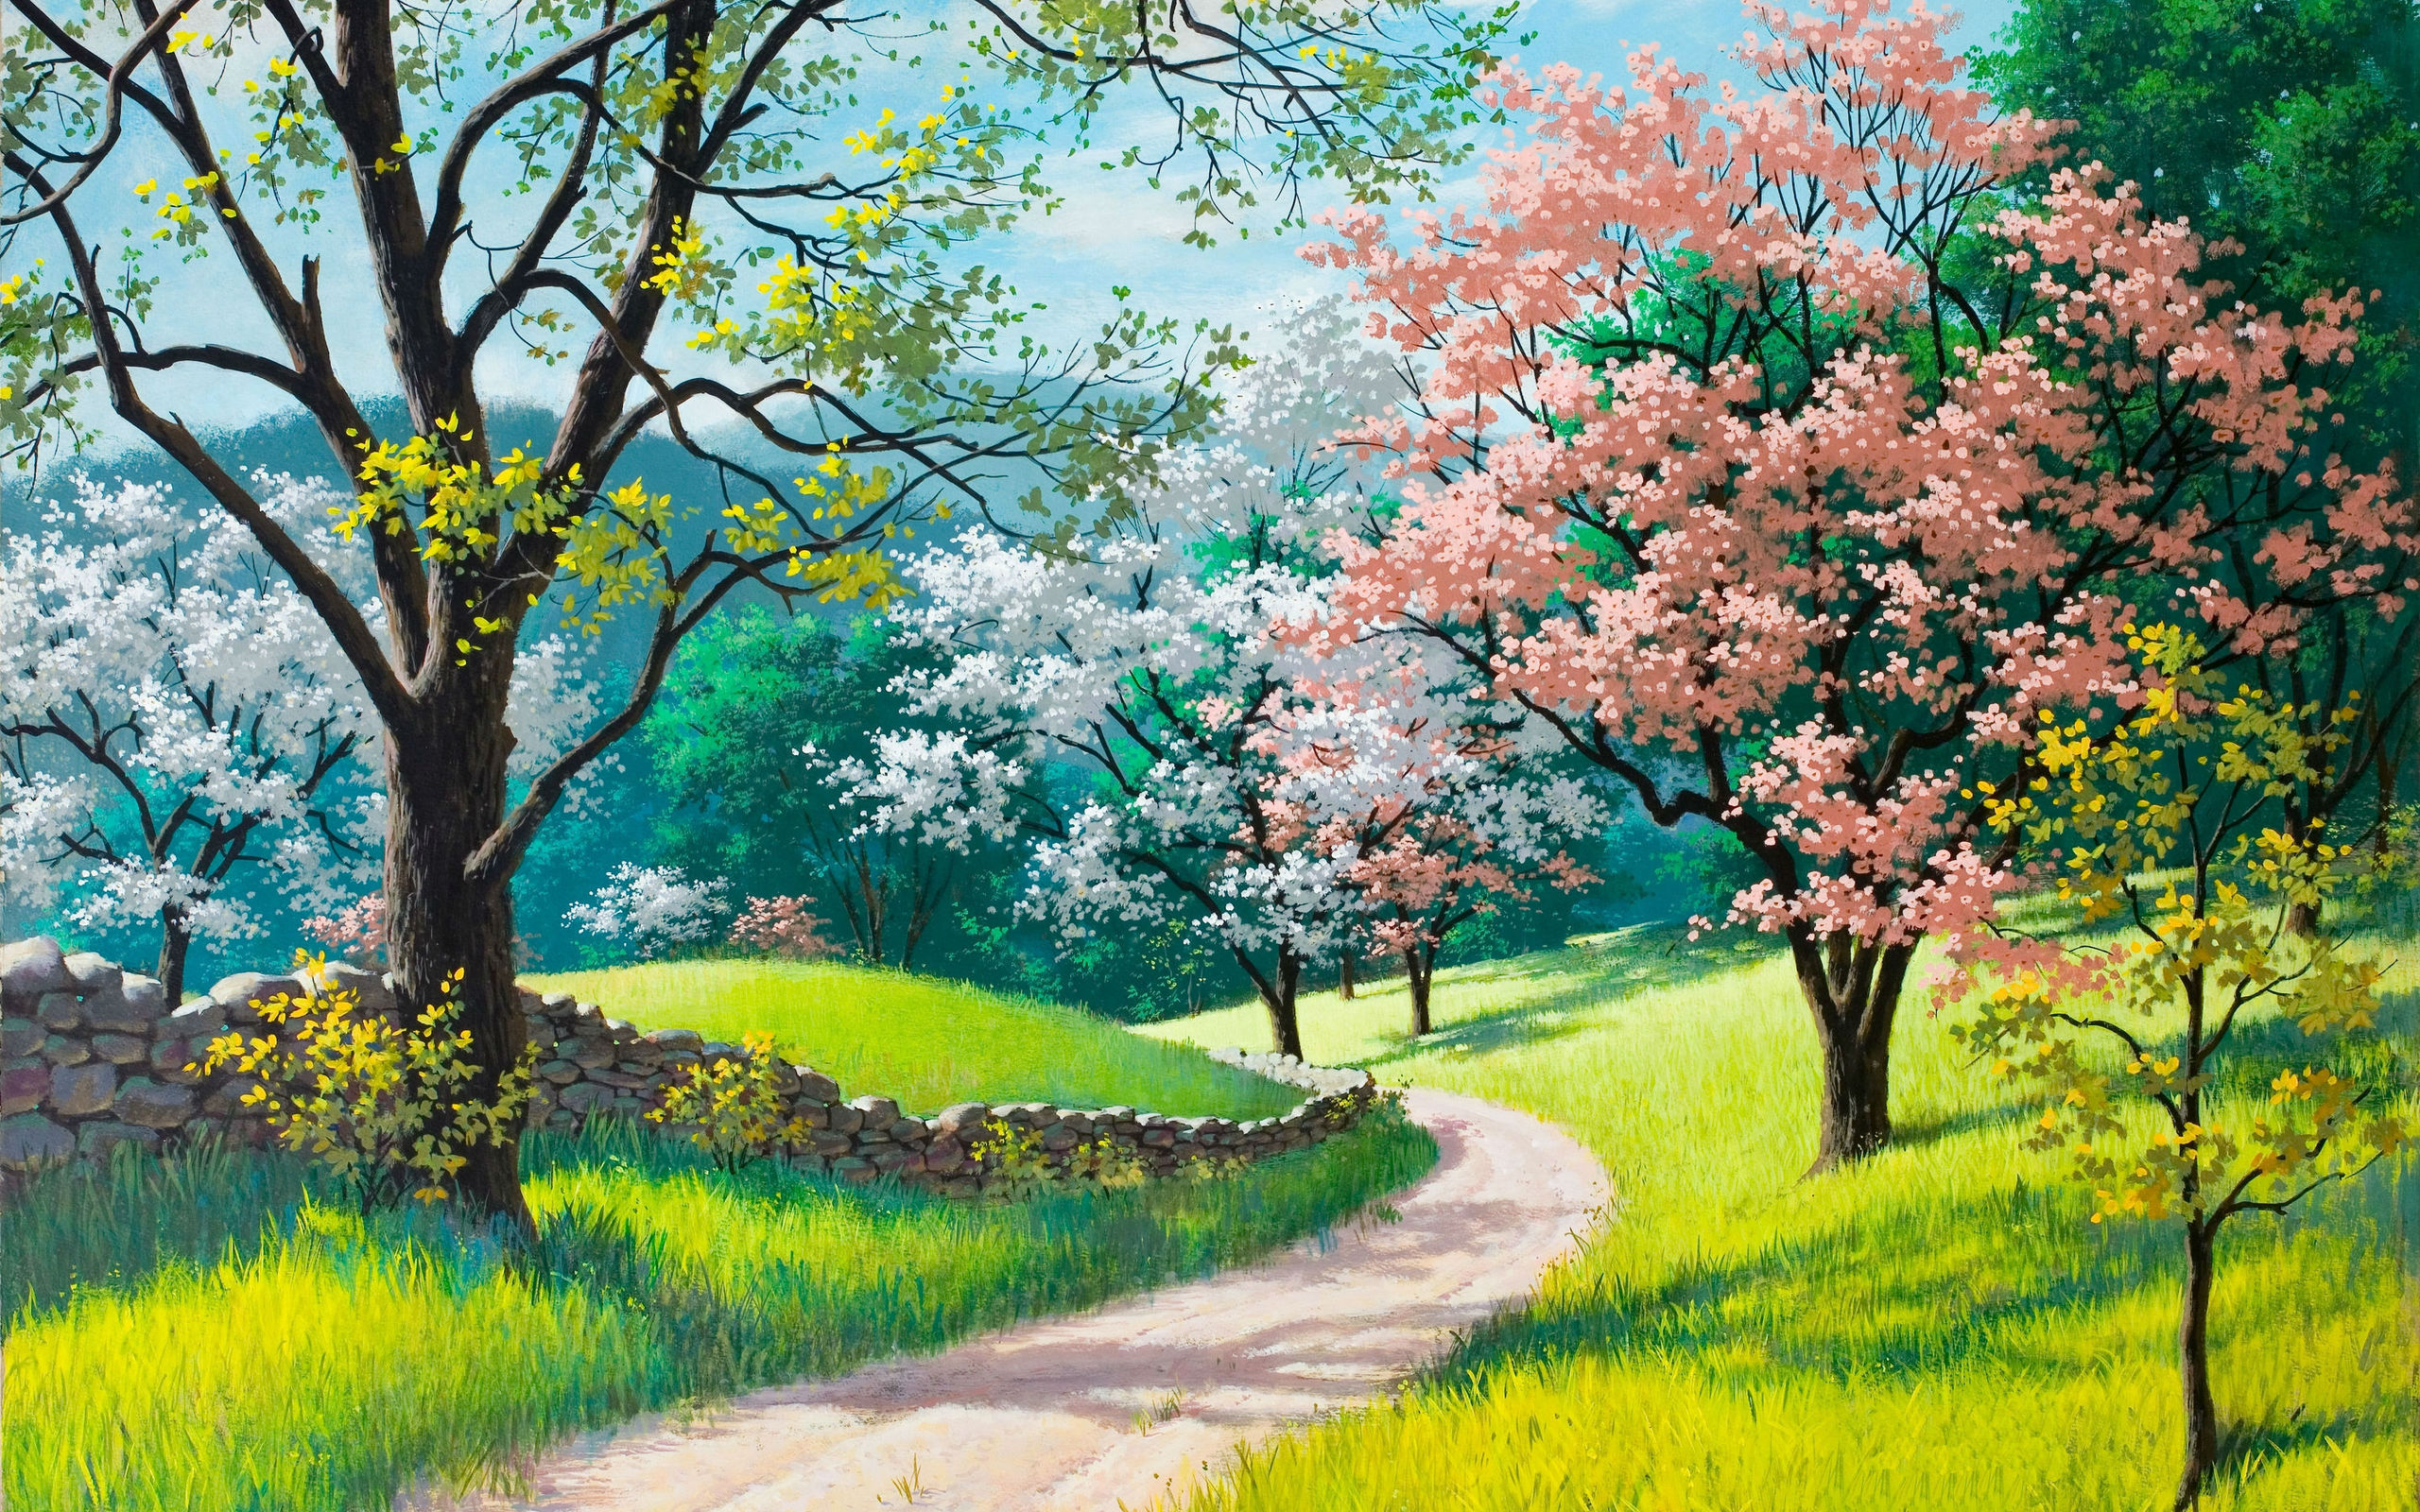 Spring blossoms painting wallpapers 2560x1600 1407502 for Spring canvas paintings